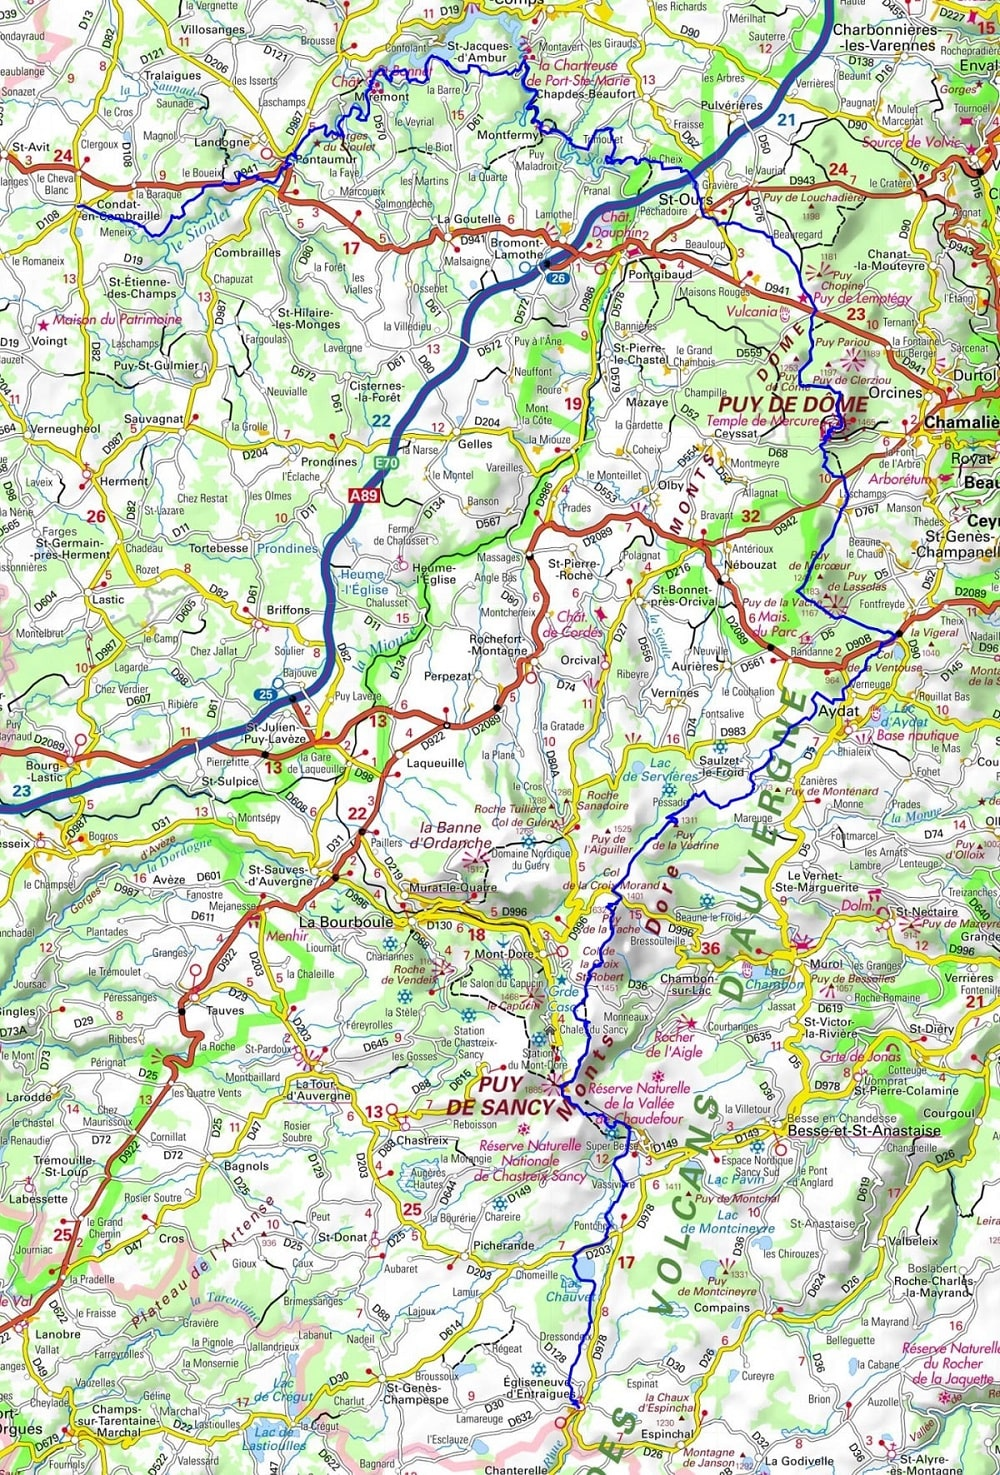 GR4 Hiking from Condat-en-Combraille to Egliseneuve-d'Entraigues (Puy-de-Dome) 1